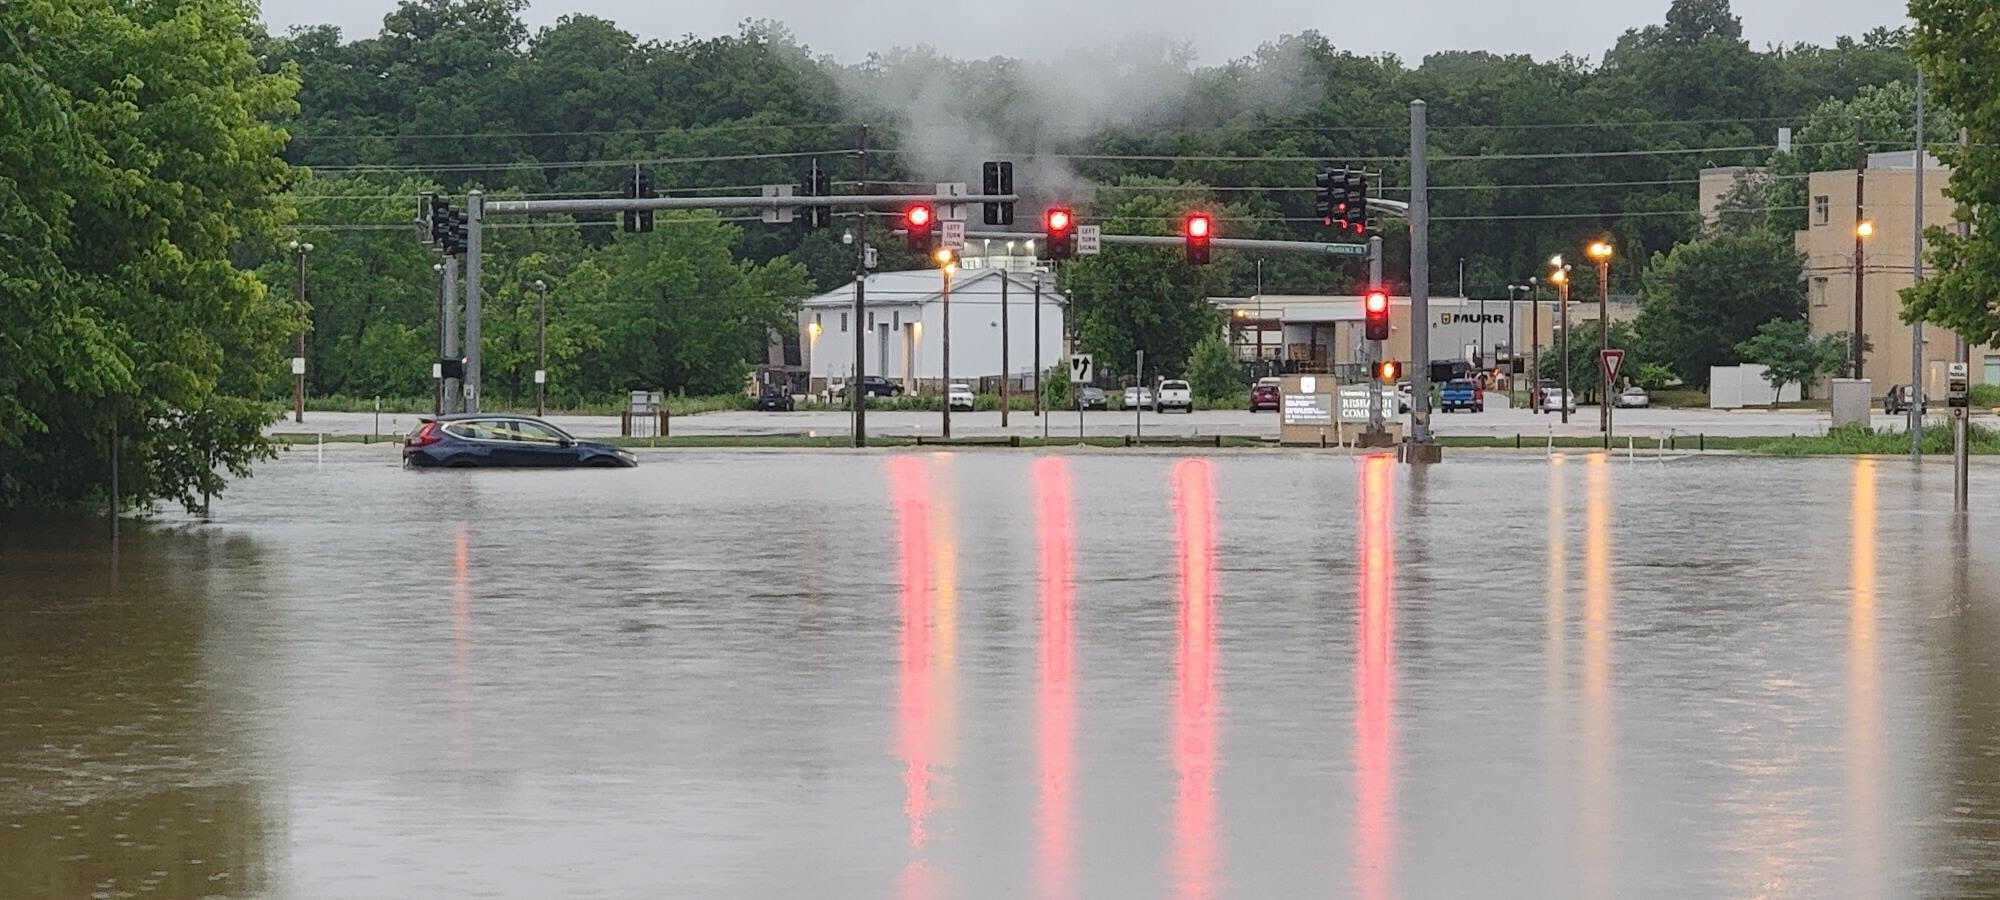 Flooding at Providence and Mick Deaver